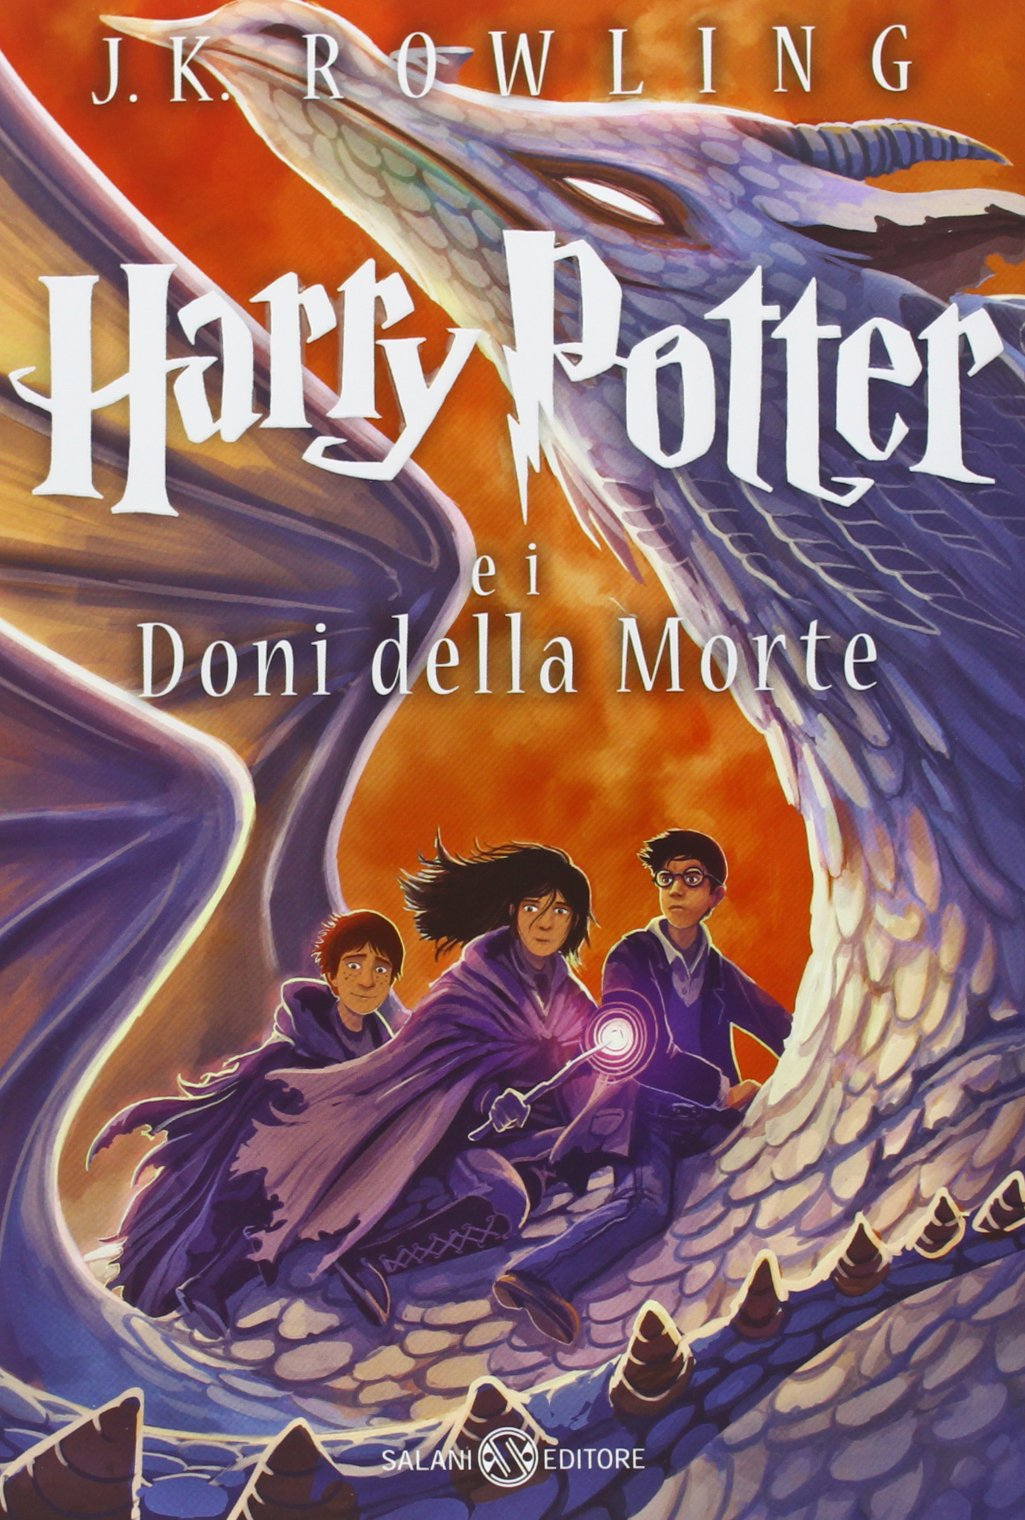 Harry Potter and the Deathly Hallows Castle Ediotion 2013 – Italian Cover